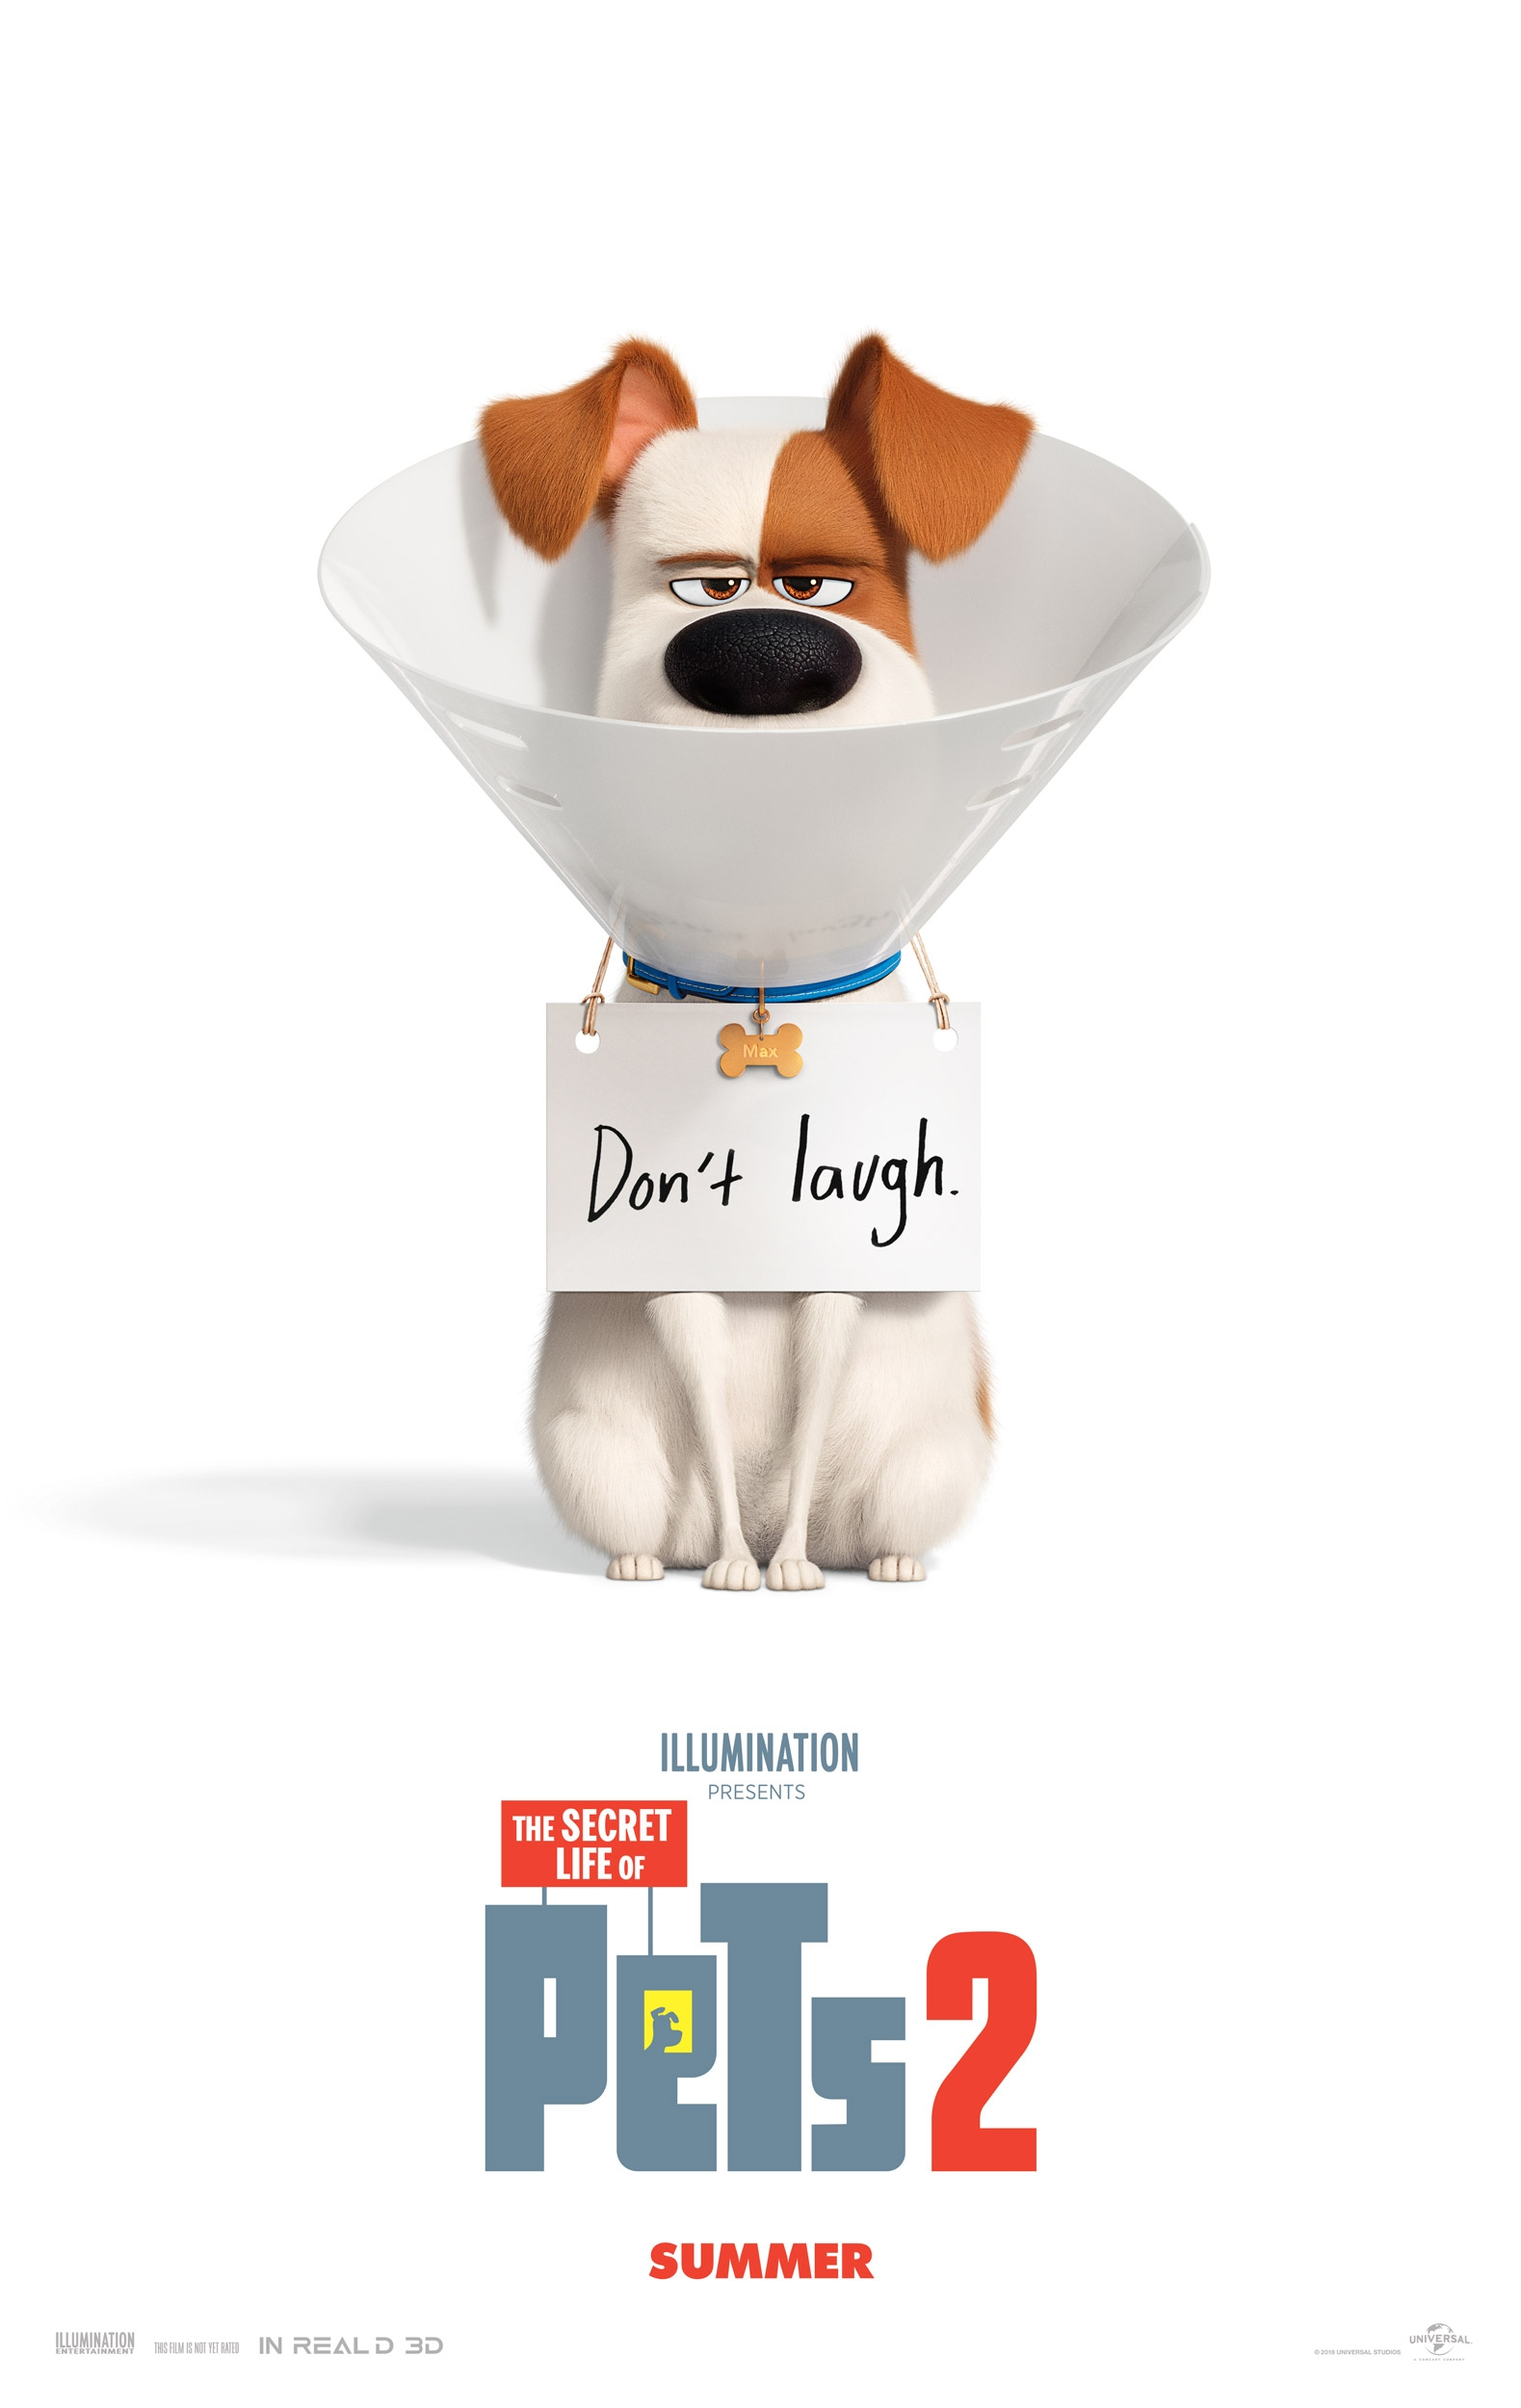 The Secret Life of Pets 2 - Poster 2